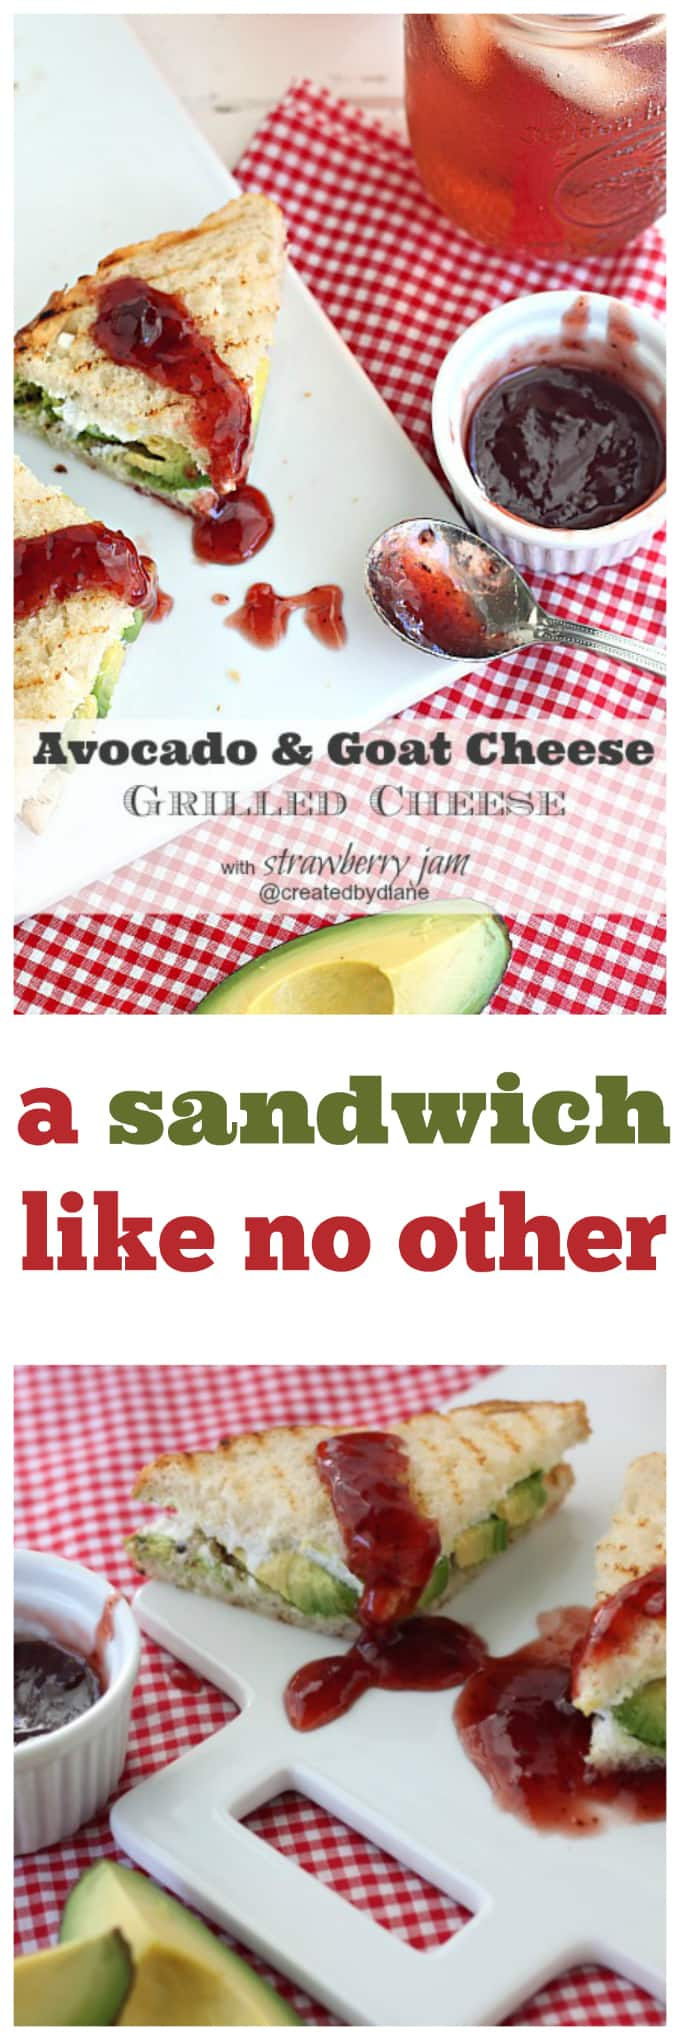 avocado and goat cheese grilled cheese sandwich @createdbydiane